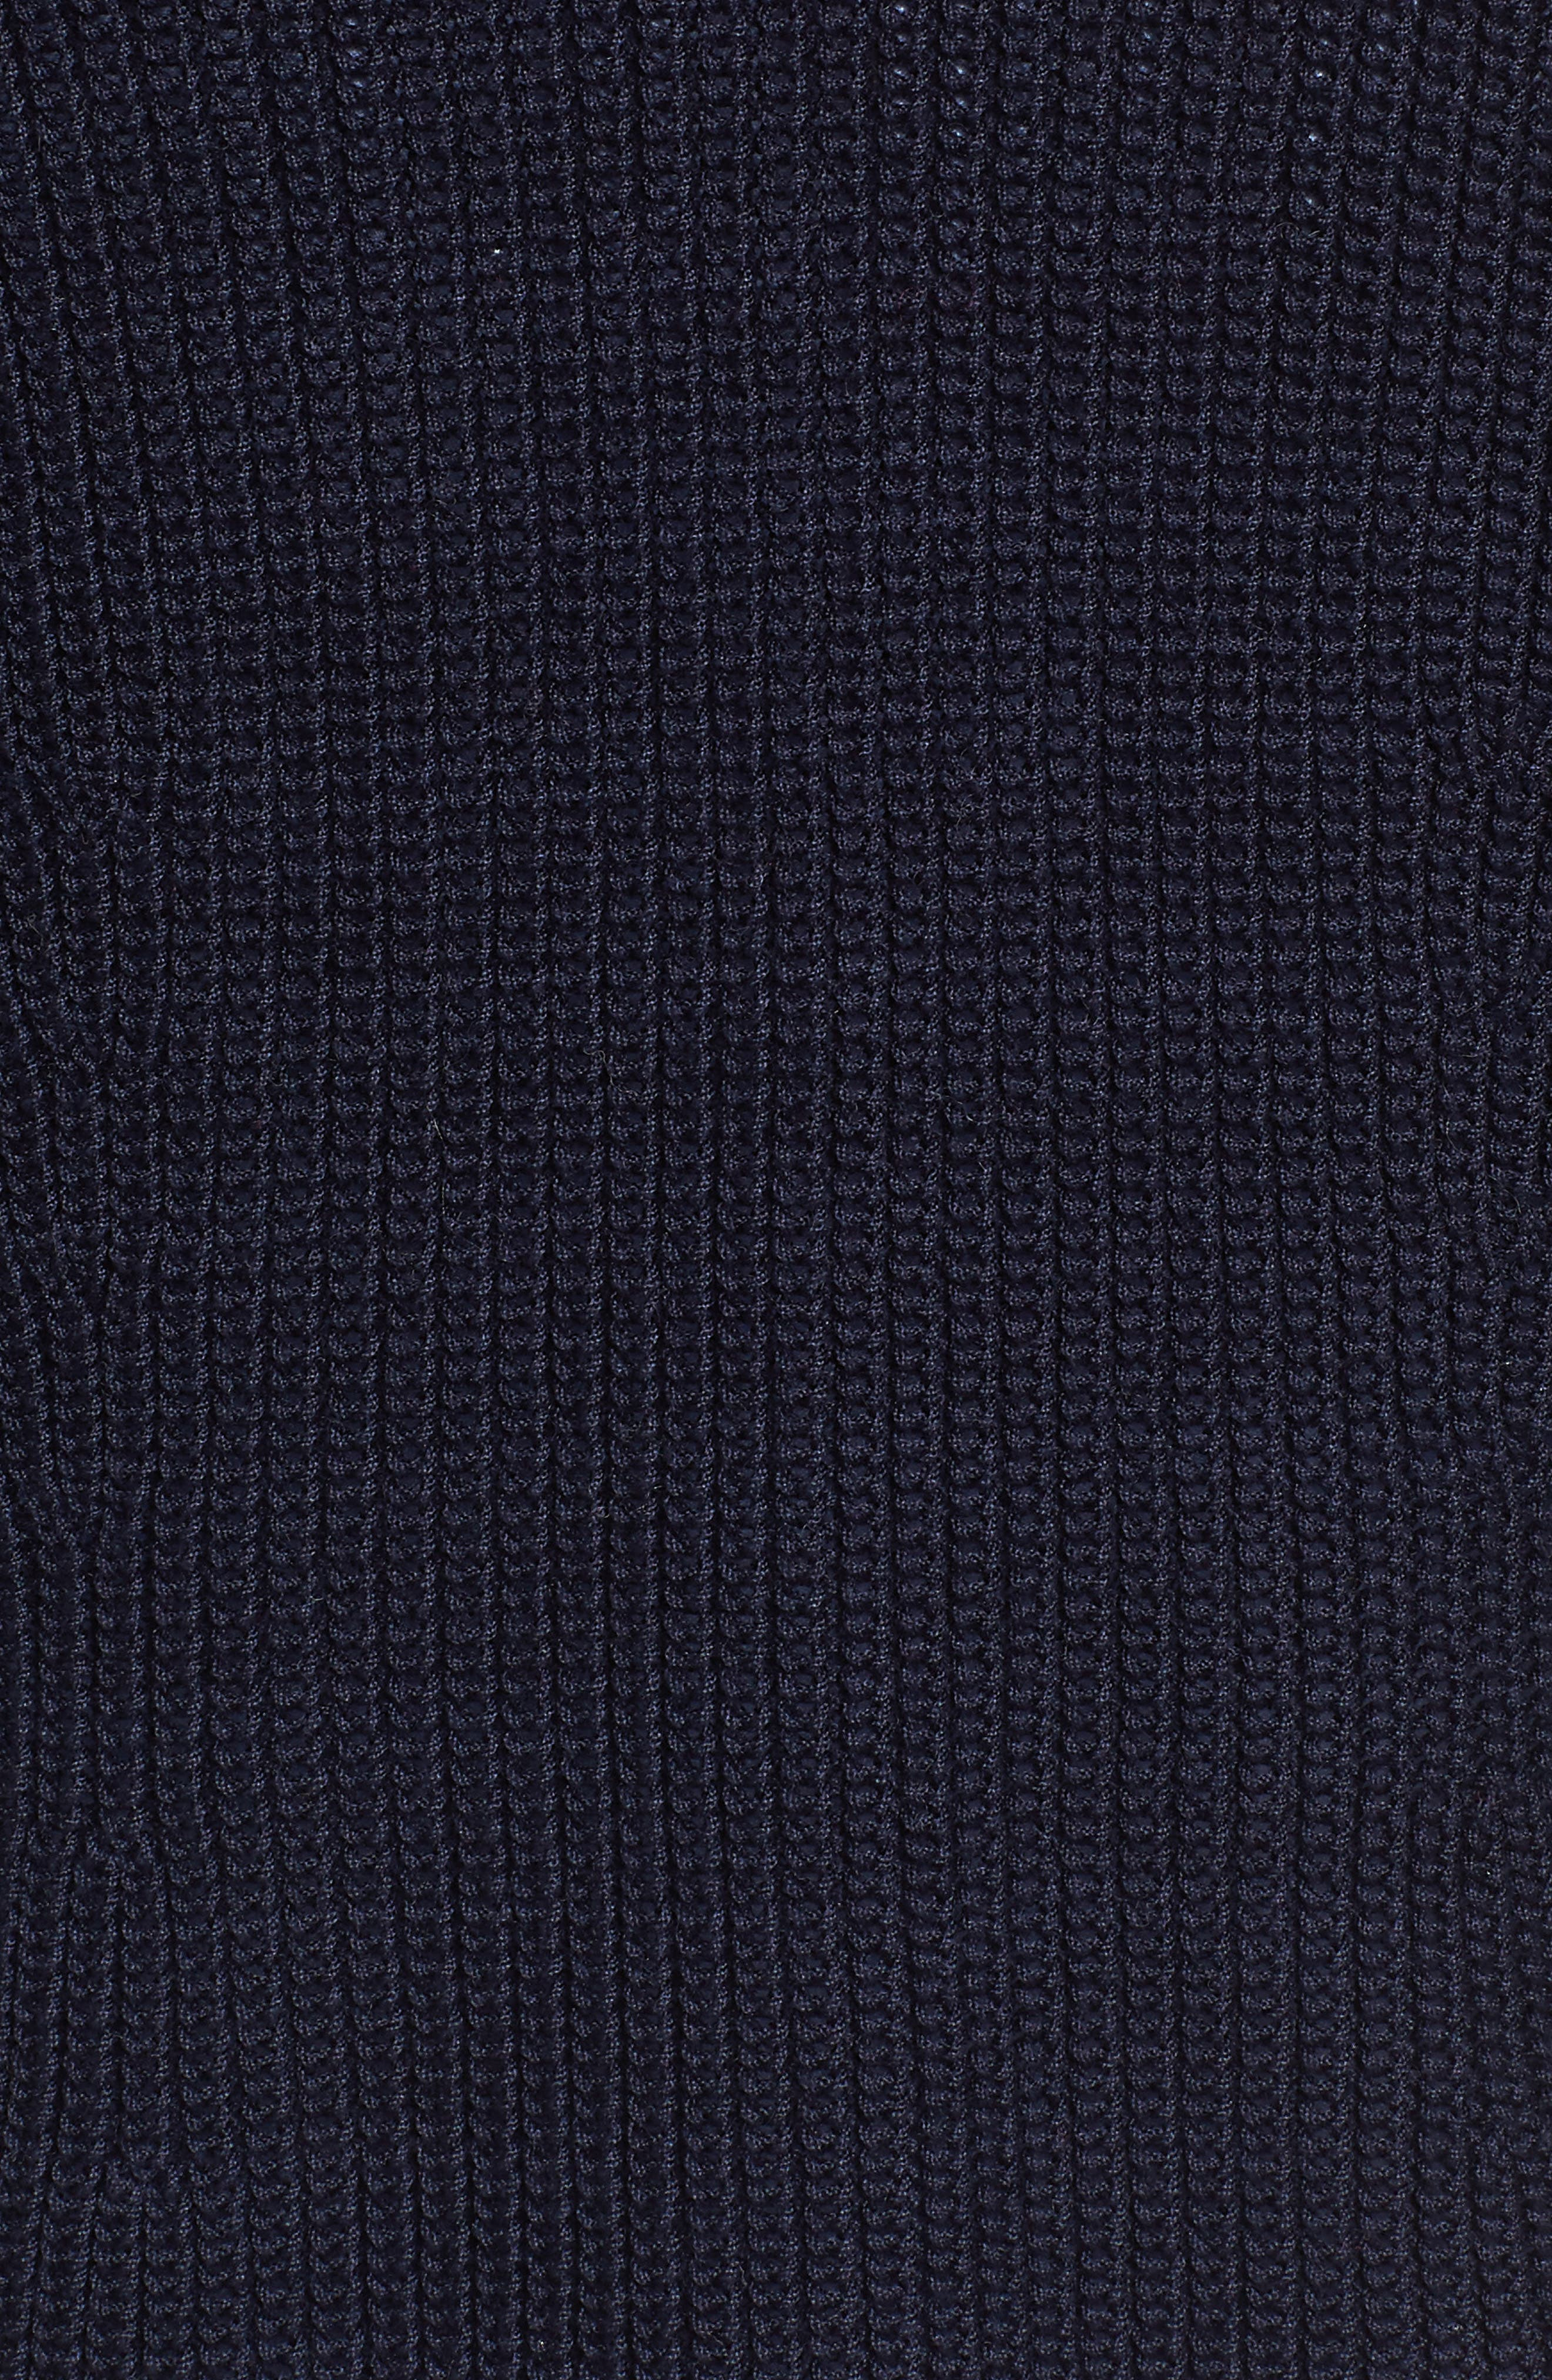 V-Neck Cotton Cardigan,                             Alternate thumbnail 5, color,                             Navy Night